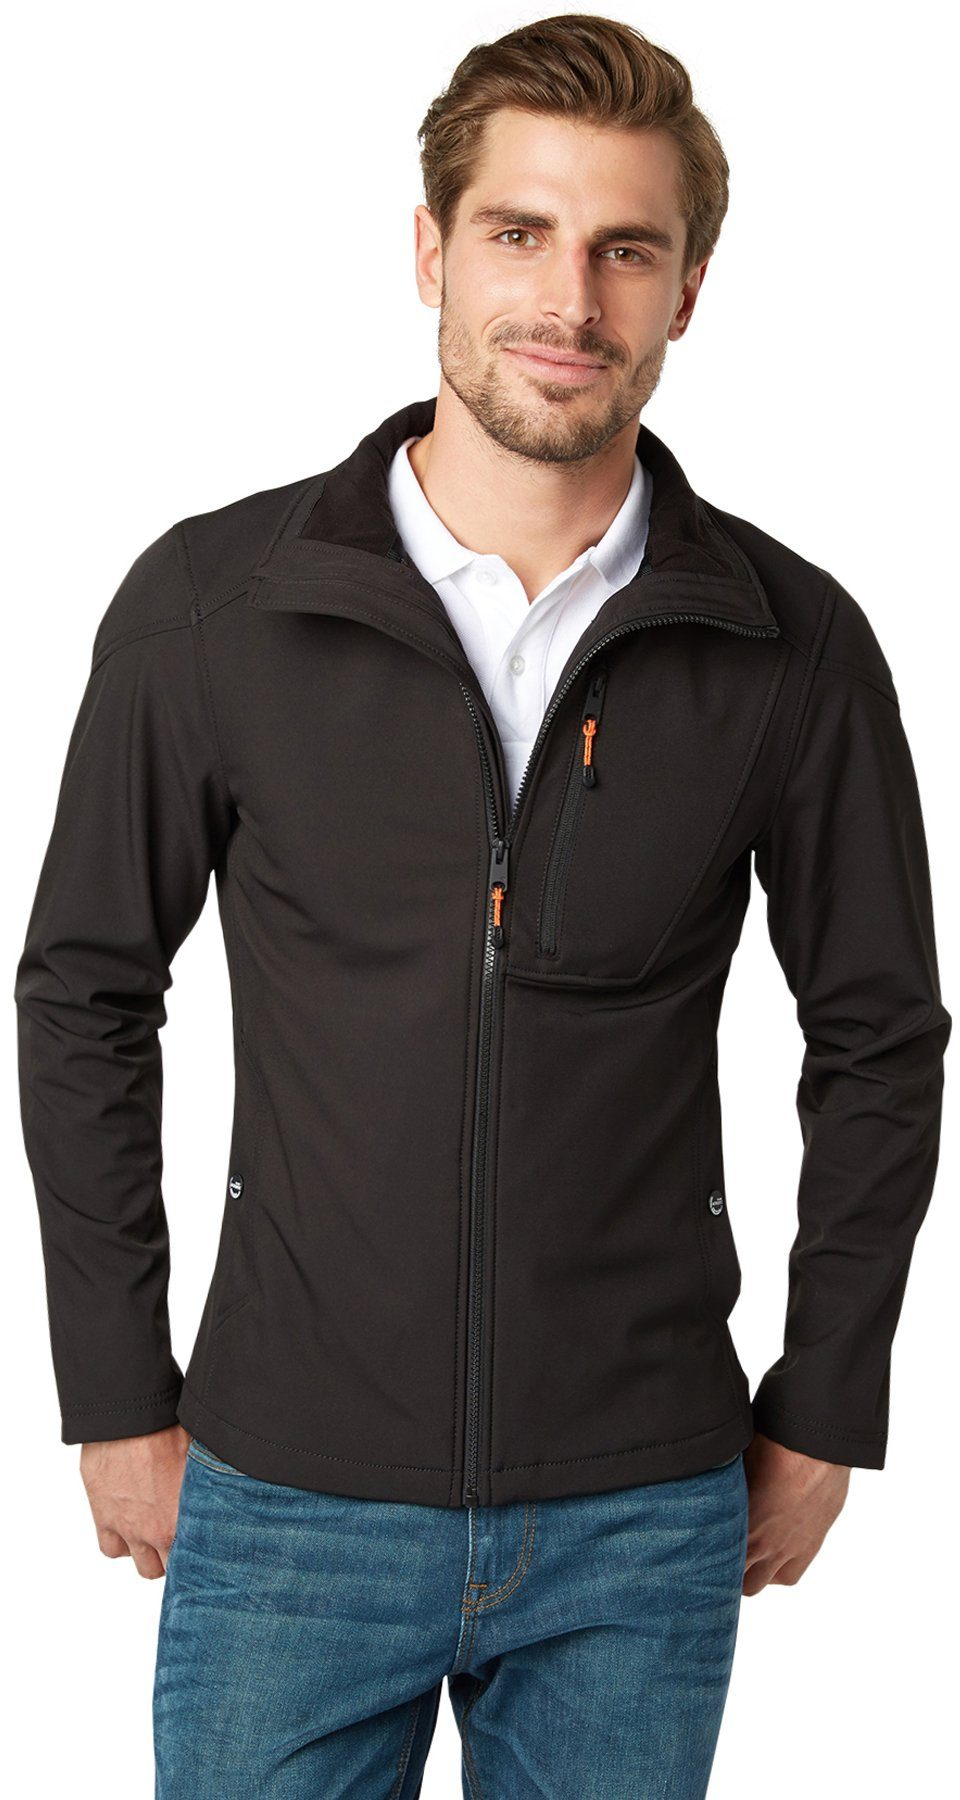 TOM TAILOR Jacke »Softshell Outdoor-Jacke«